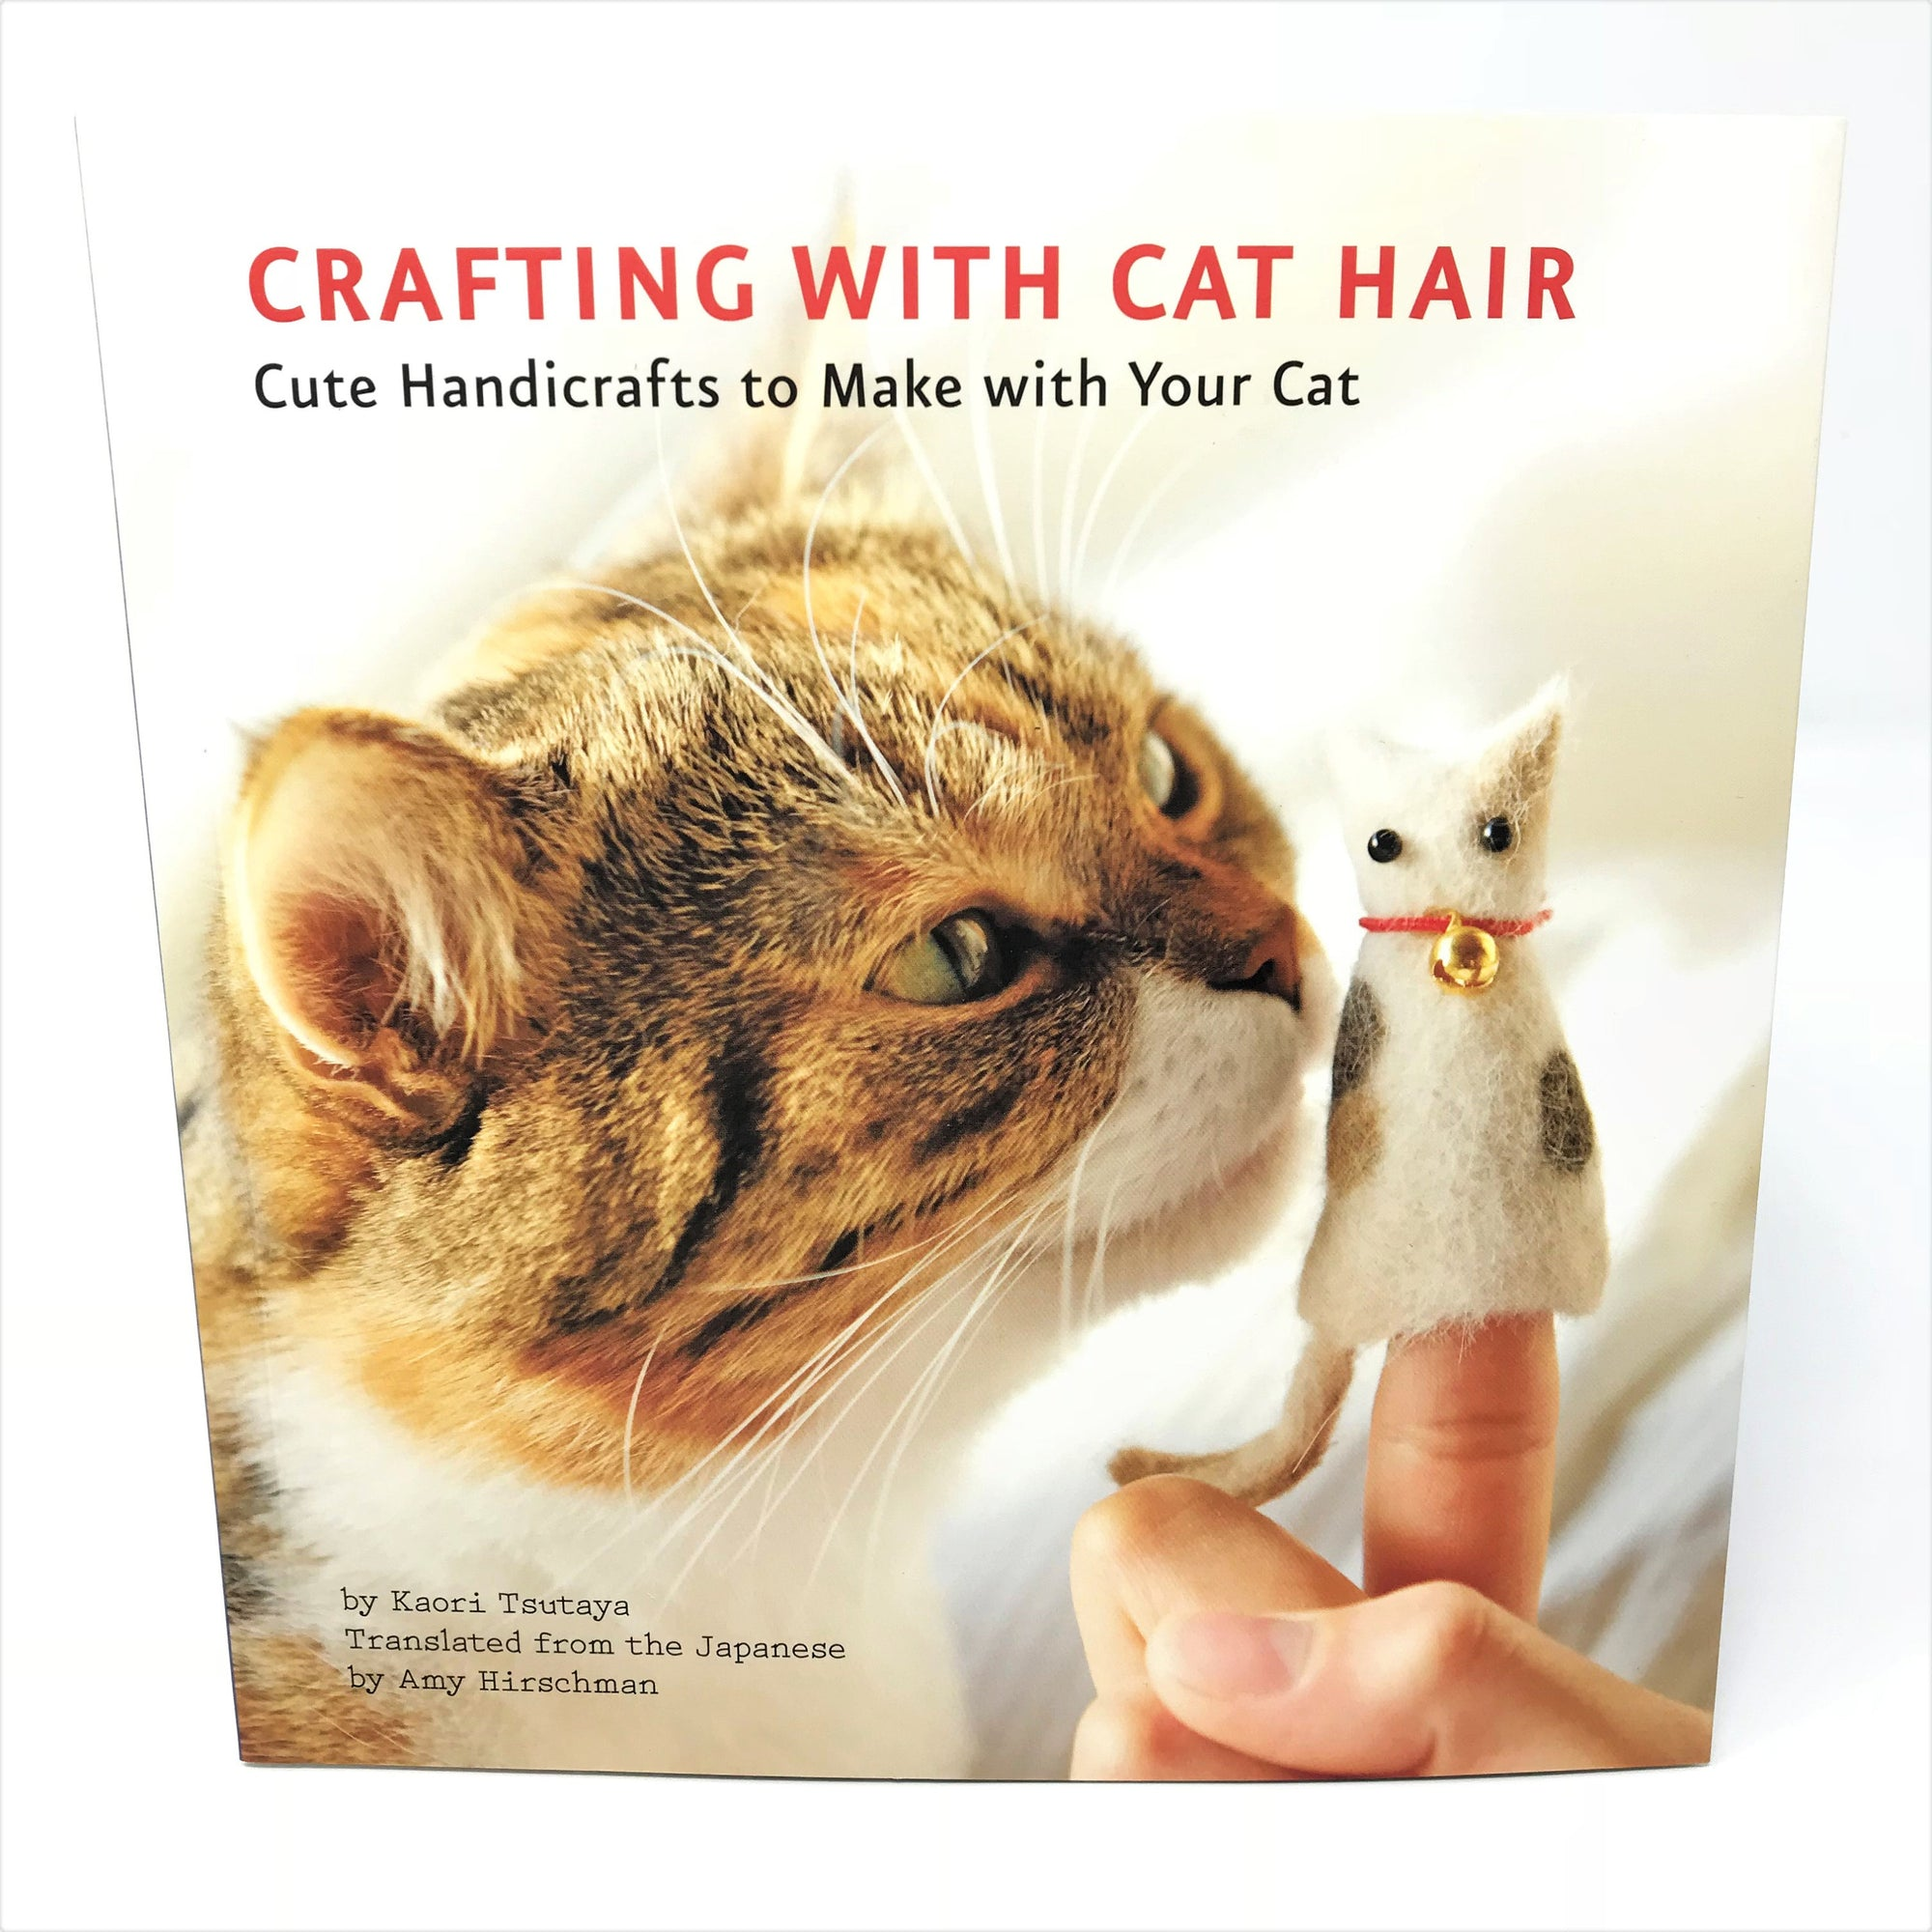 Crafting with Cat Hair - English Book by Kaori Tsutaya